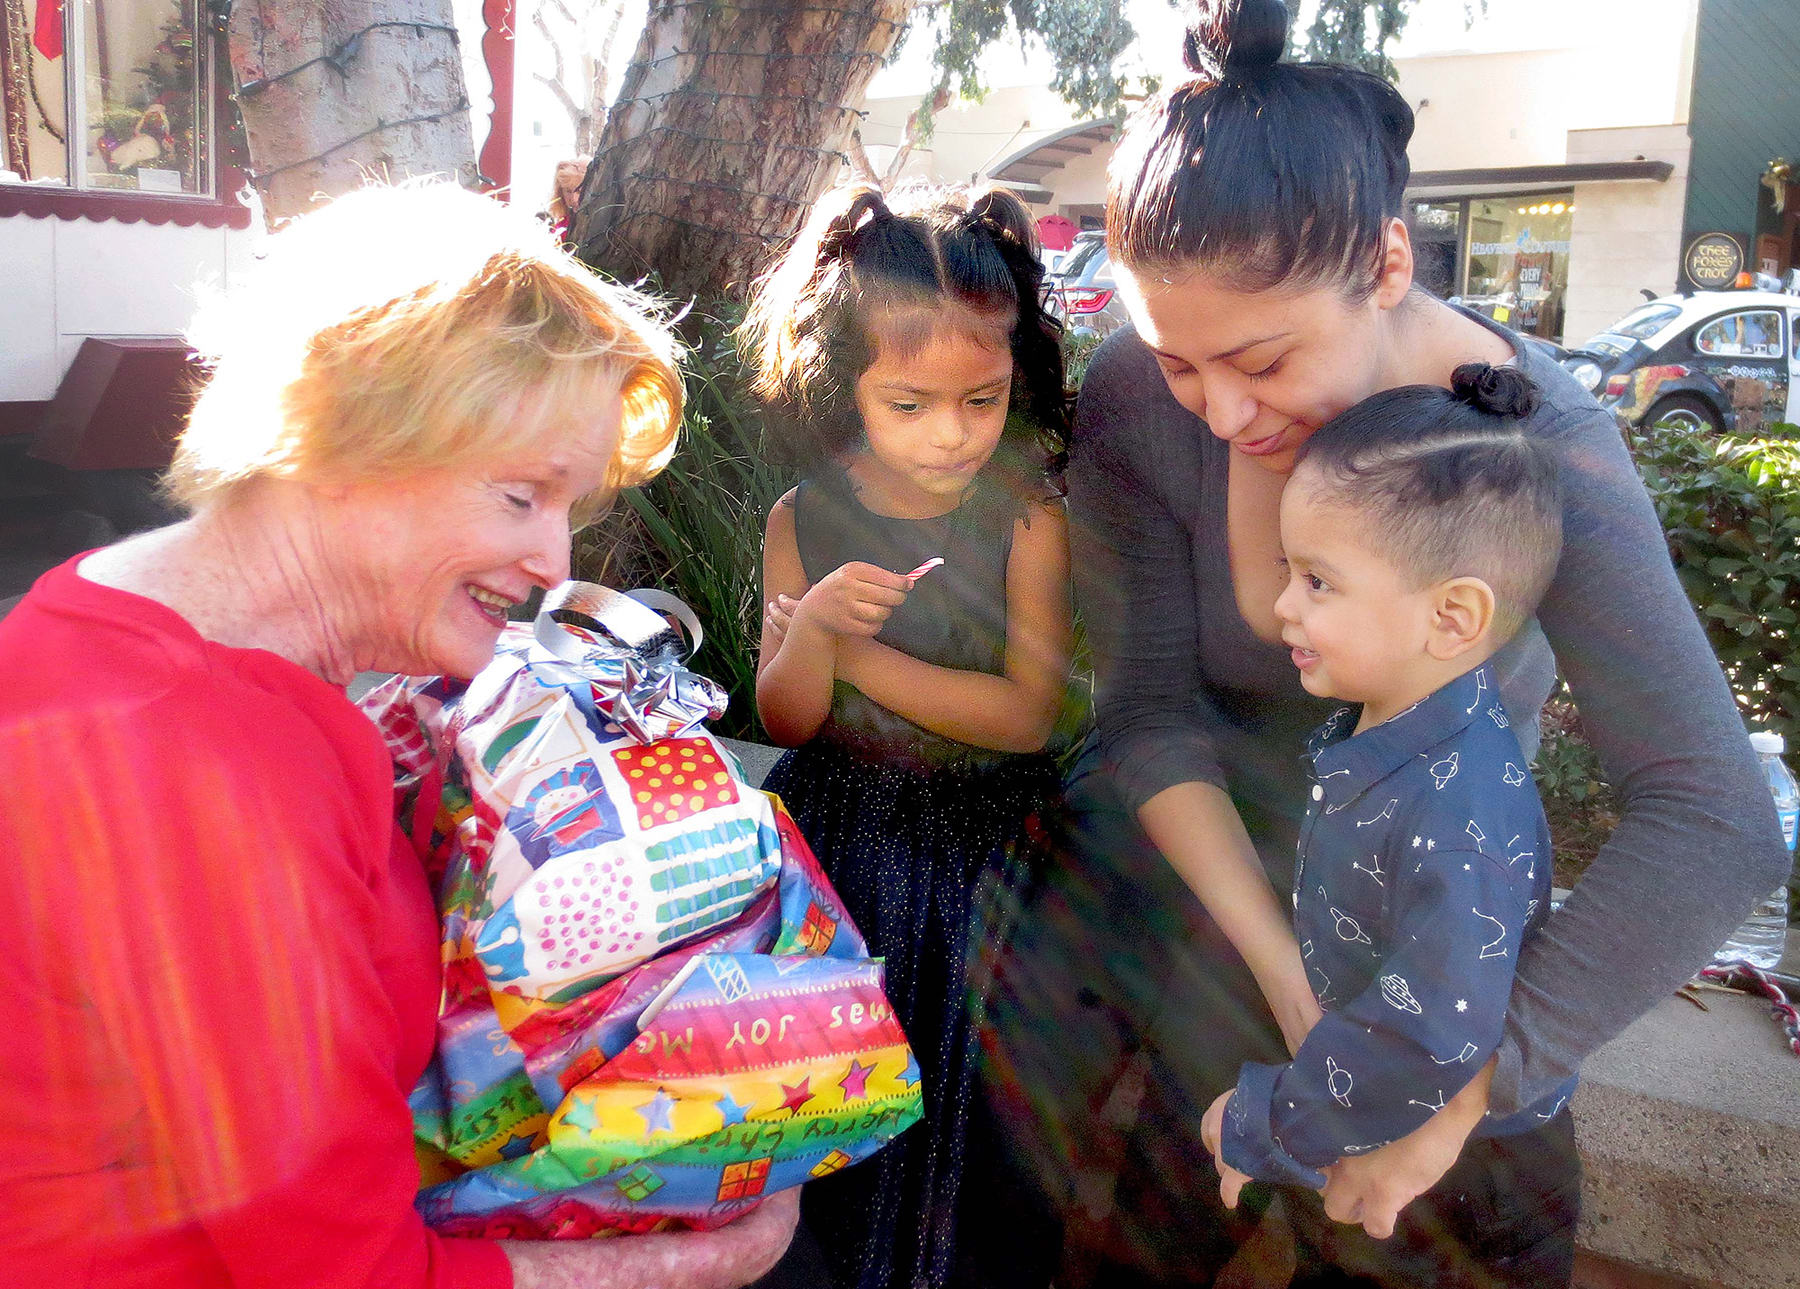 Chris Loidolt, Left, Brings Gifts To Maggie Ladislao Ramirez,22, And Her